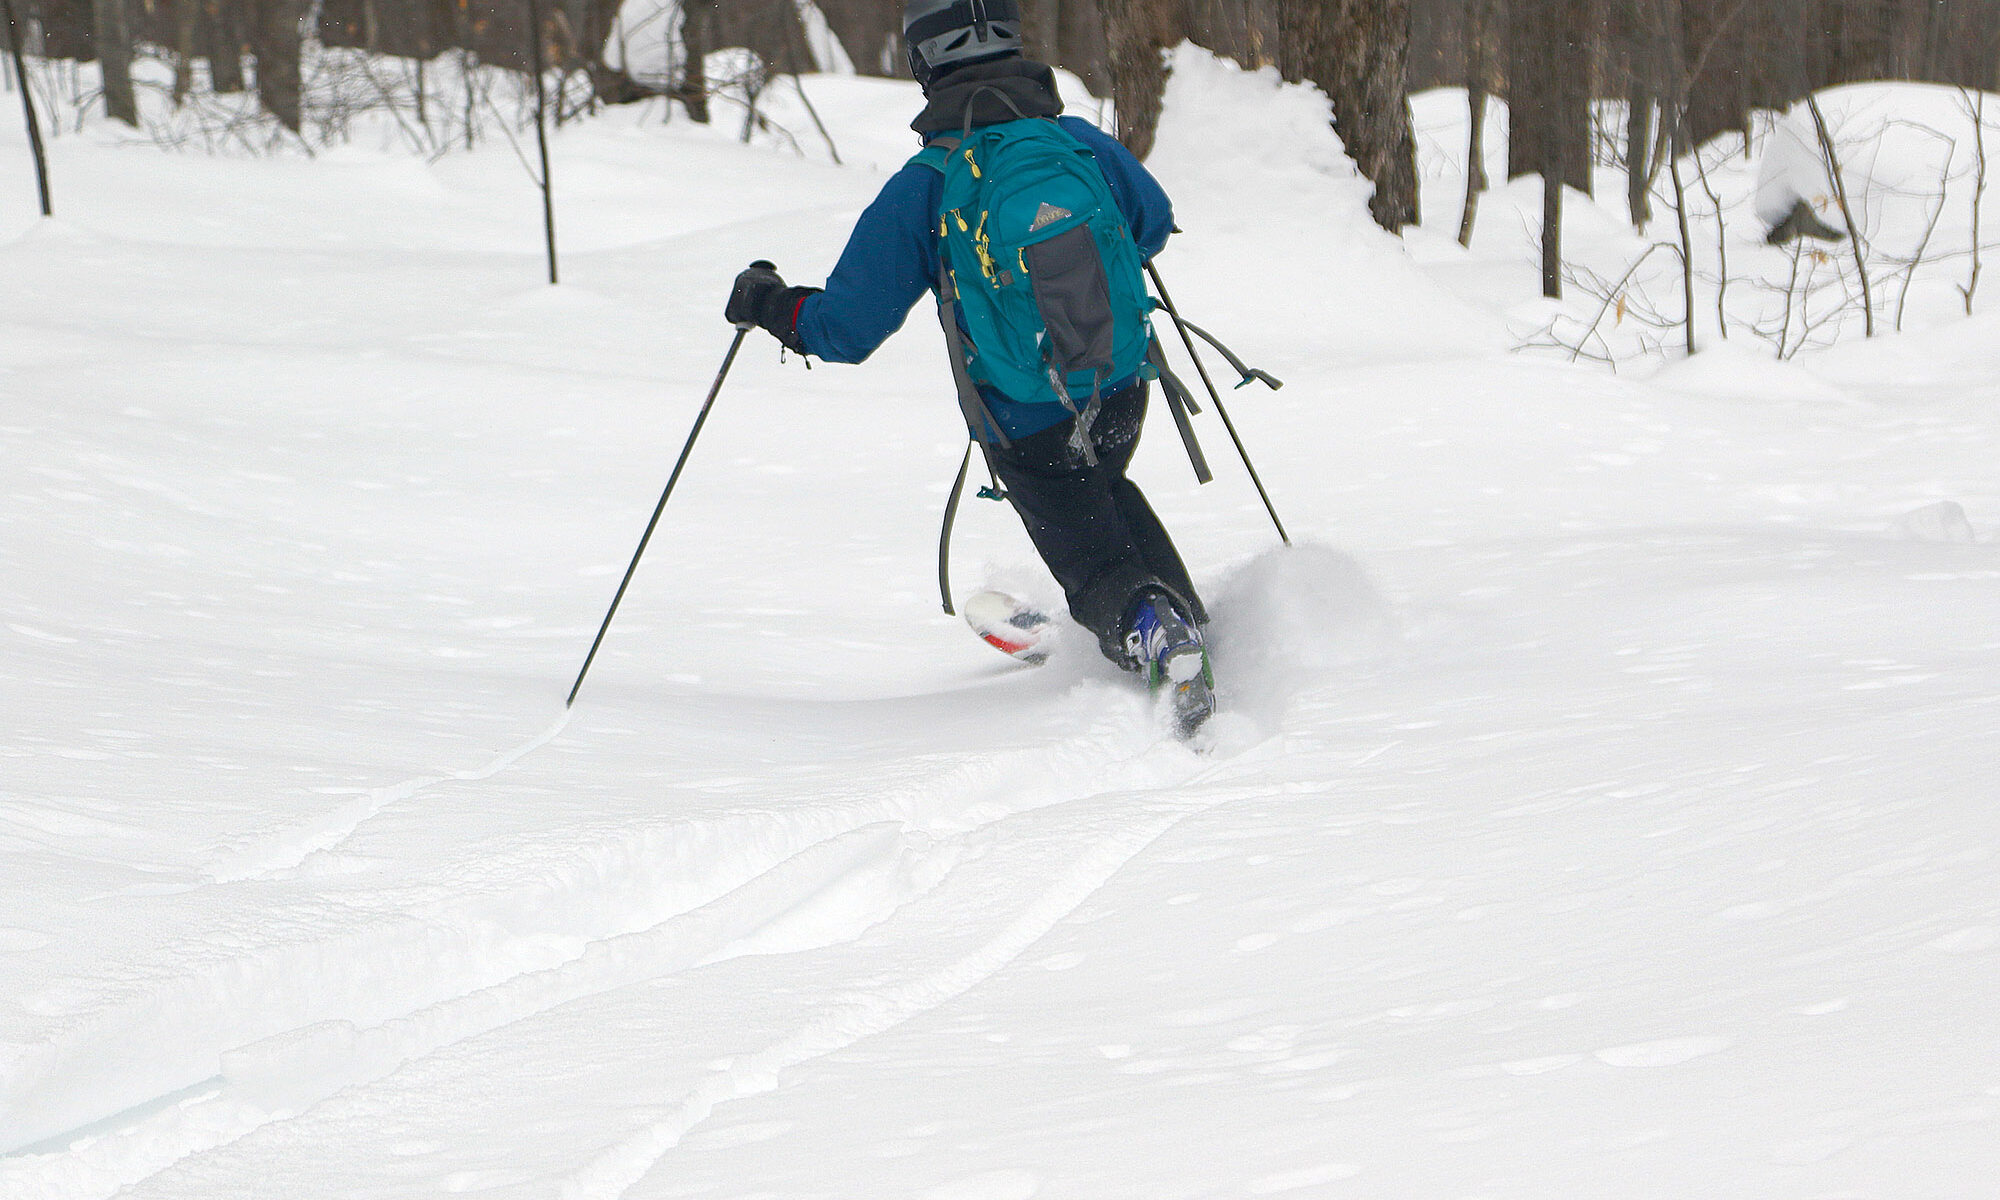 An image of Erica skiing out through powder in the trees below the Buchanan Shelter in the backcountry at Bolton Valley Ski Resort in Vermont